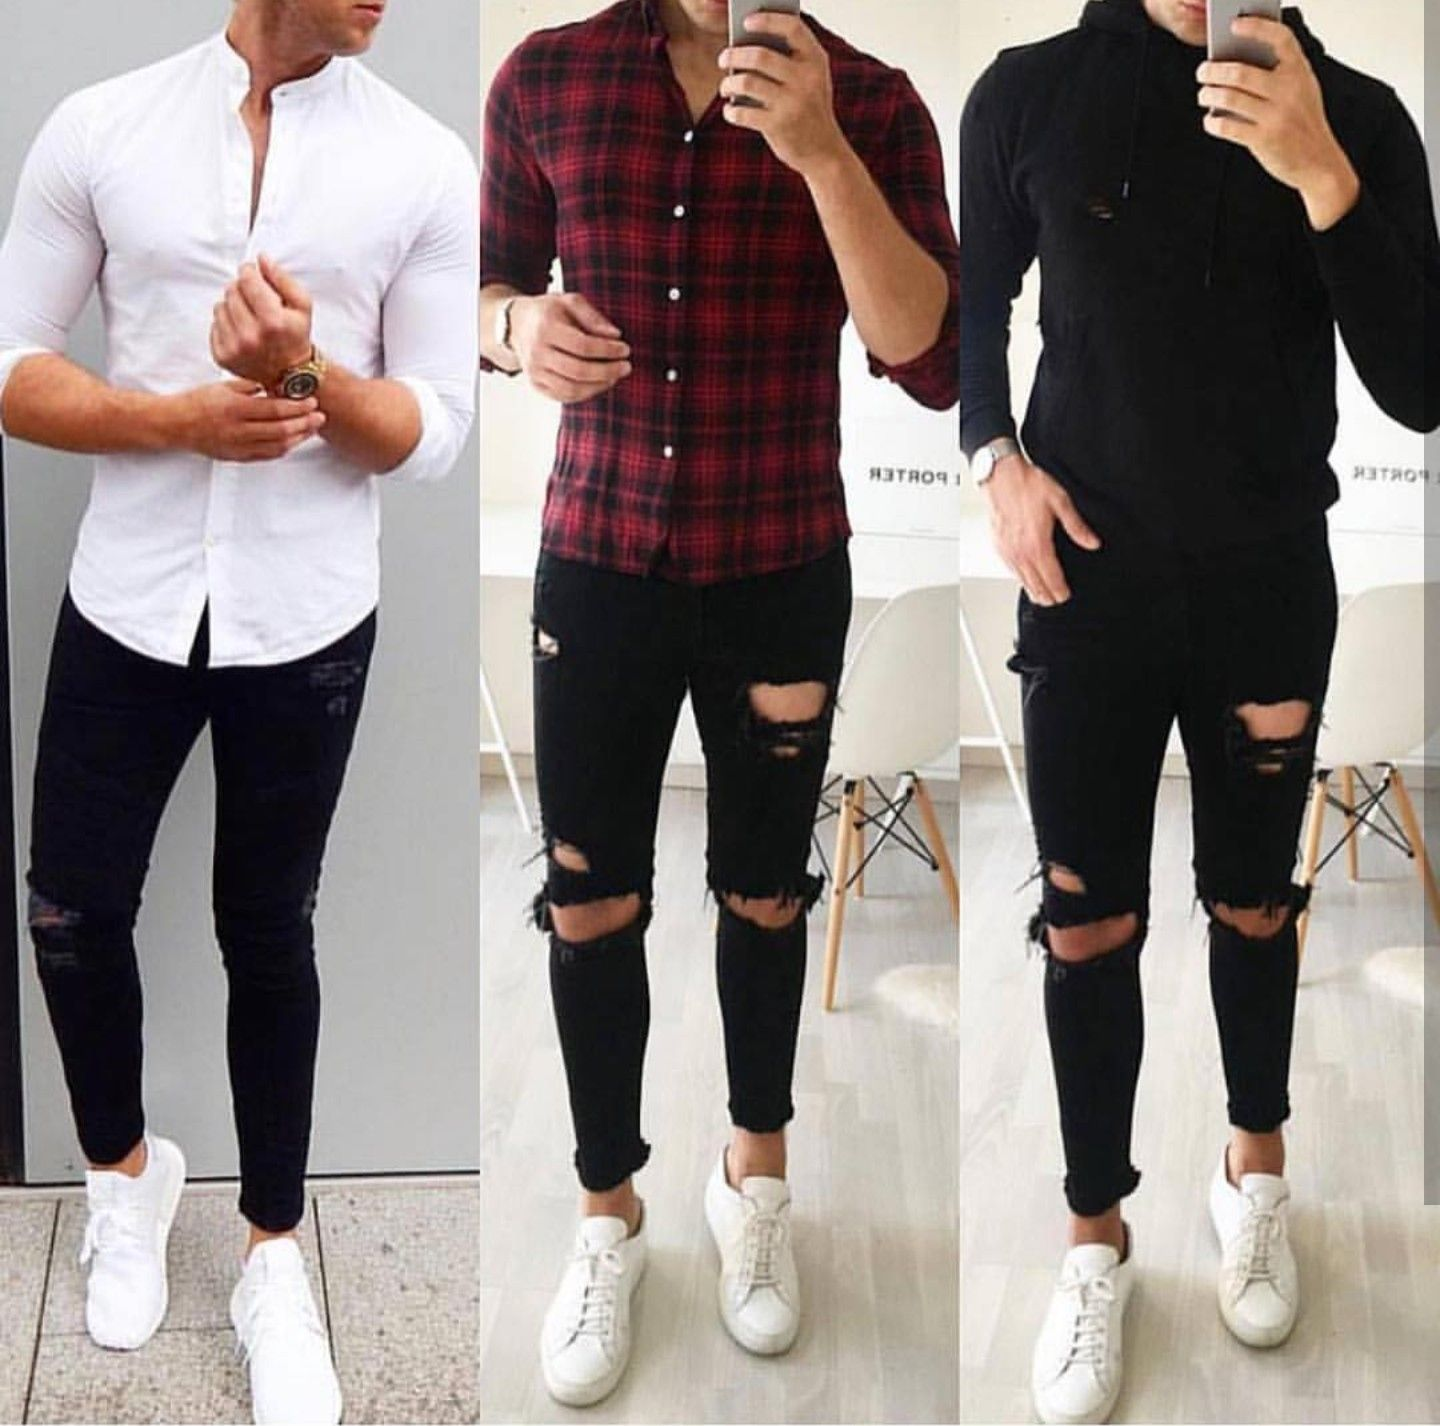 Pin By Marlon Estrada On Atuendo Men Fashion Casual Outfits Mens Fashion Casual Outfits Mens Clothing Styles